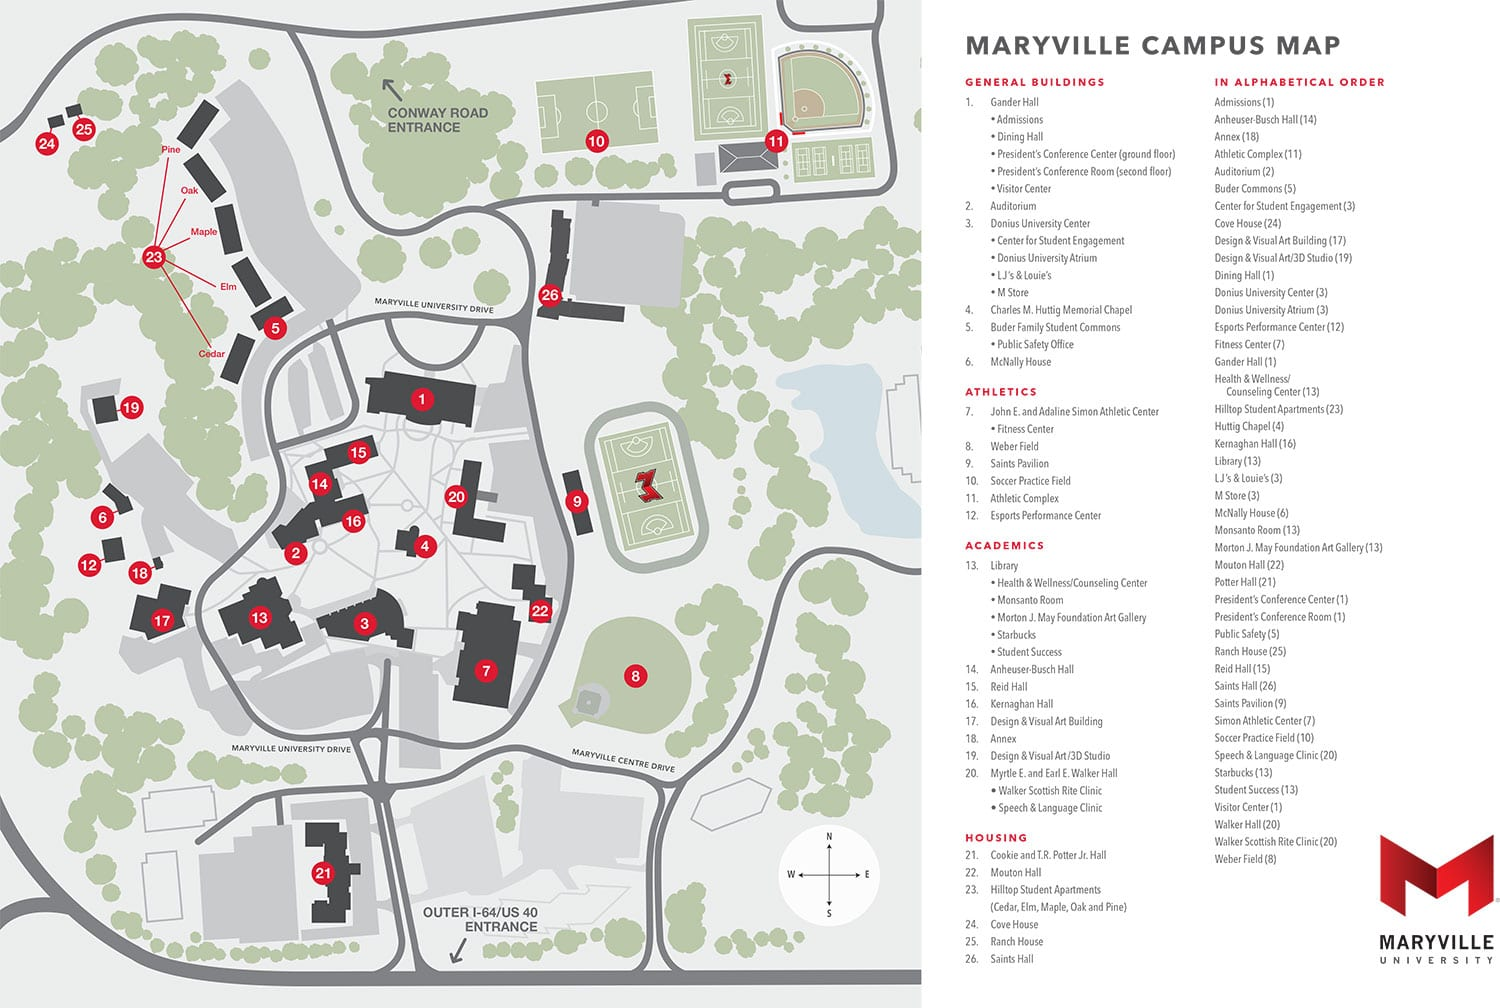 Maryville University Campus Map